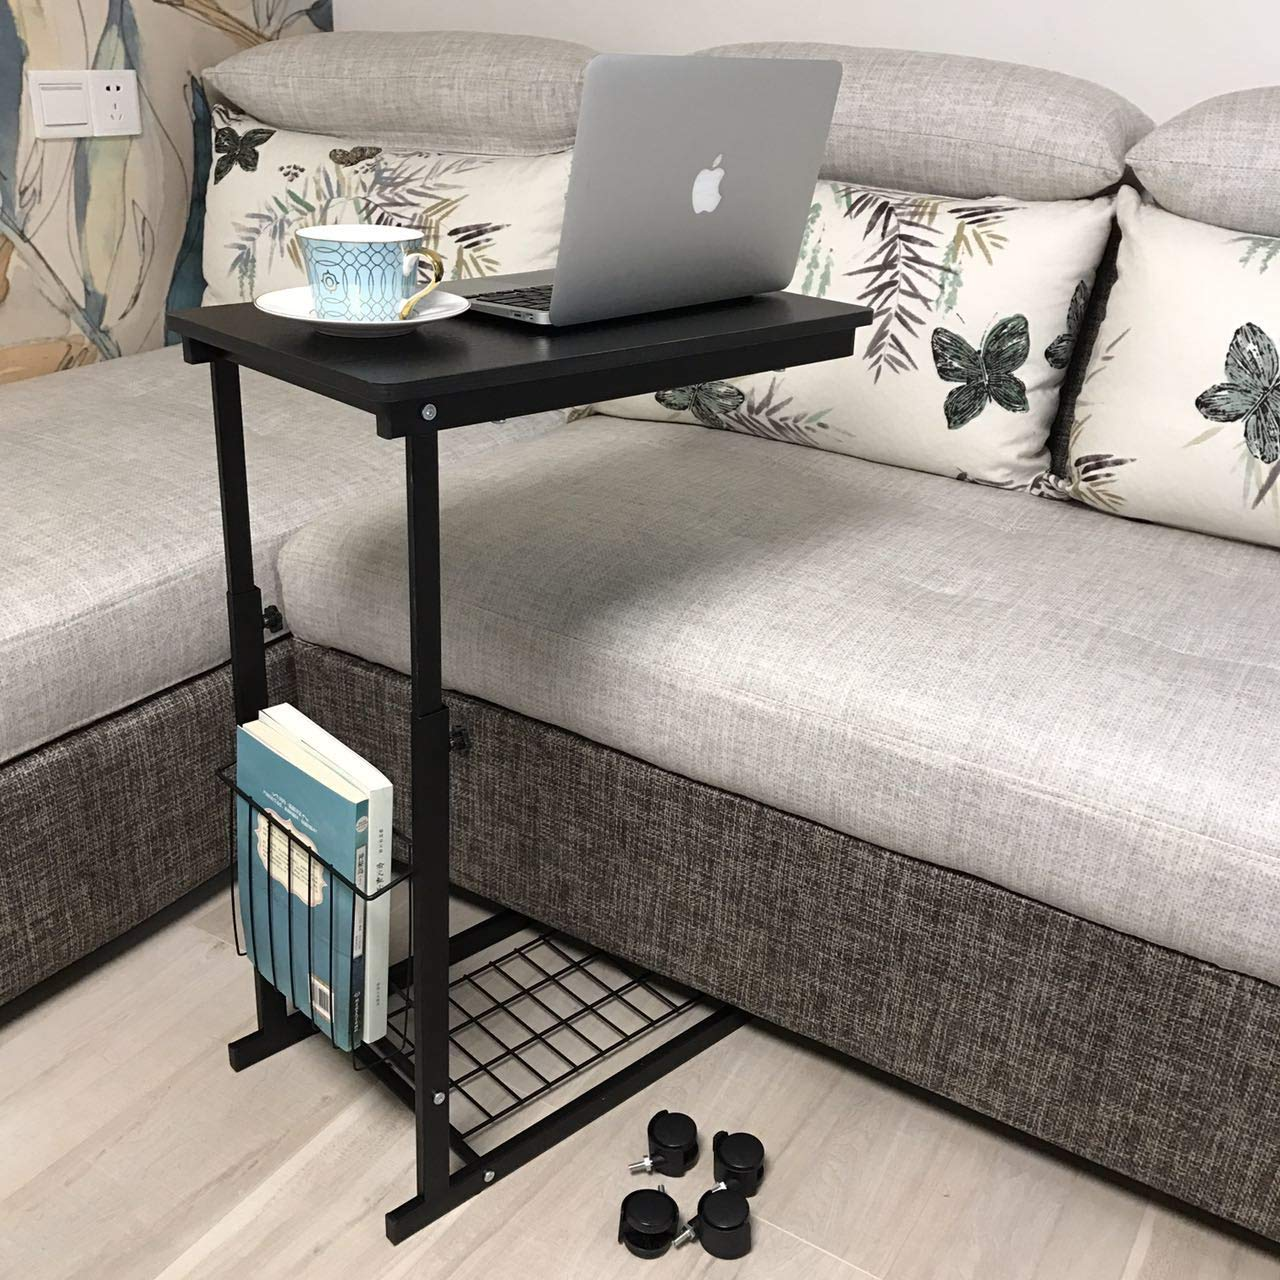 micoe height adjustable with wheels sofa side table small accent tables under slide console storage for entryway hallway kitchen dining pair mirrored bedside end ideas clearance